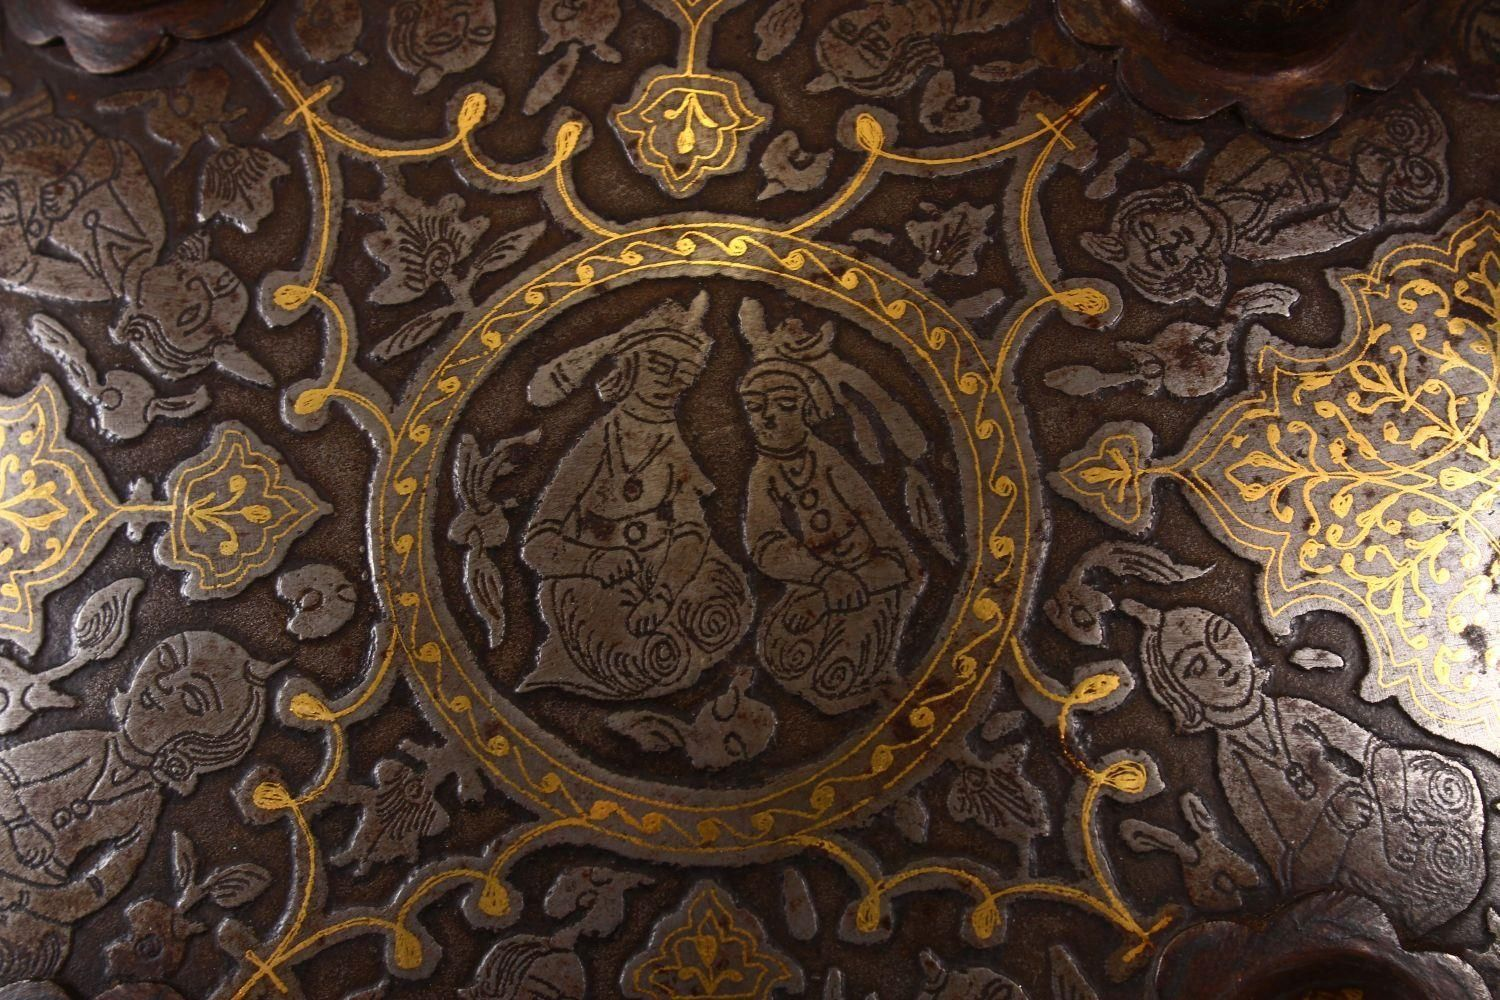 A LARGE 19TH CENTURY PERSIAN GILT DECORATED STEEL SHIELD, with carved decoration of figures, bands - Image 3 of 12